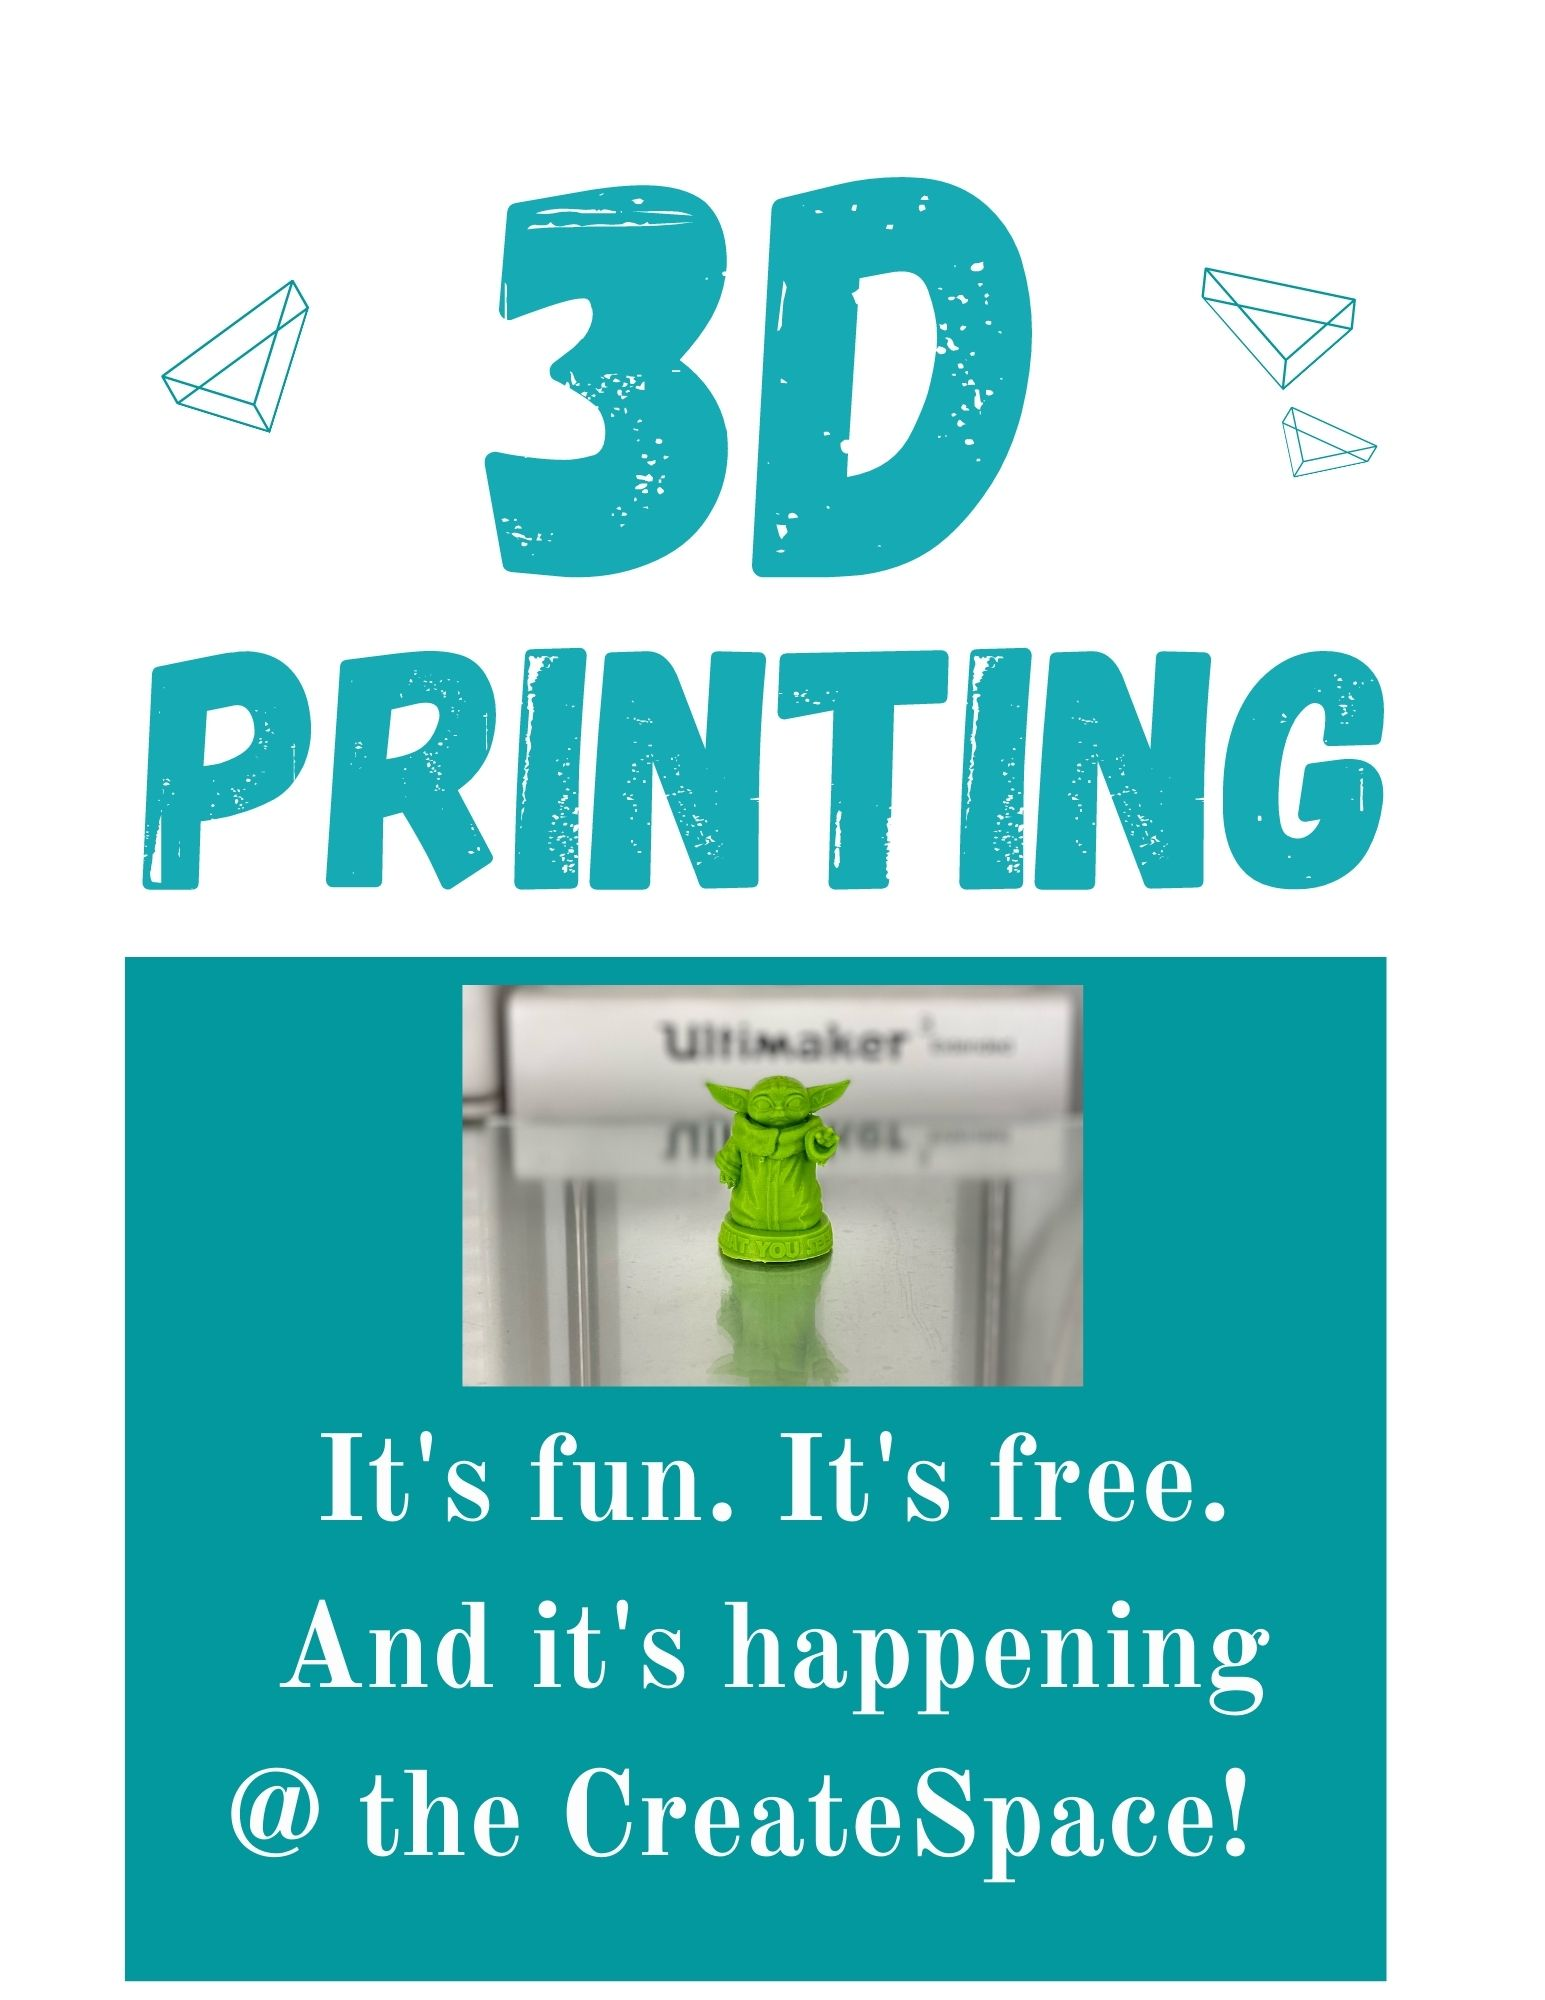 An image of a 3D-printed Baby Yoda figurine is in the center. Above, the words